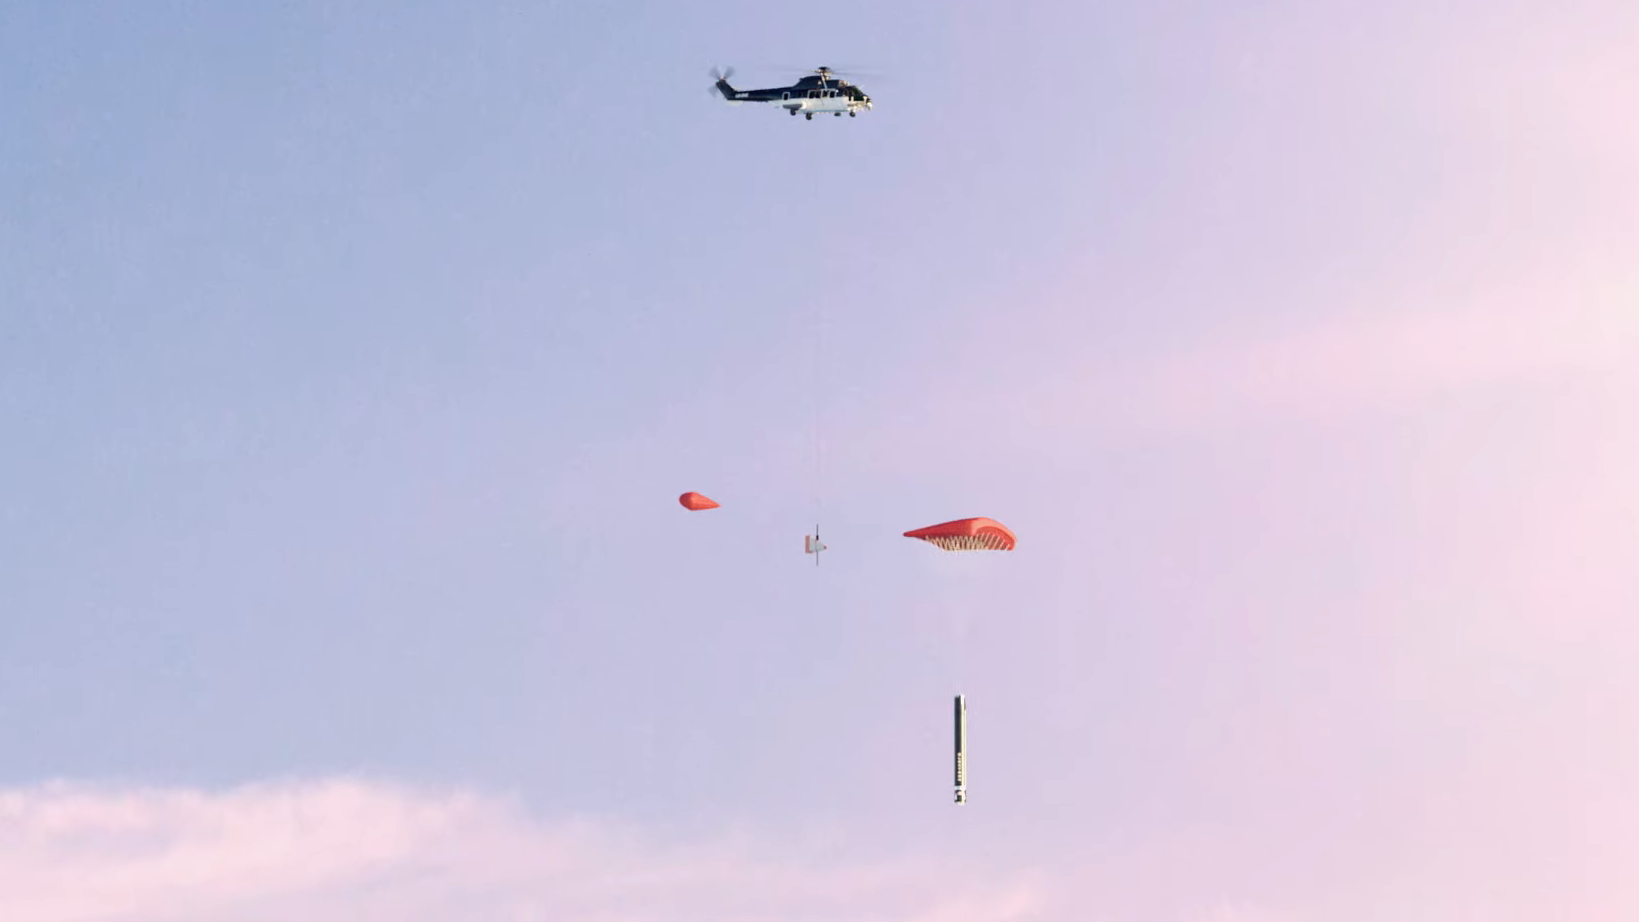 RocketLab Reuse Helicopter